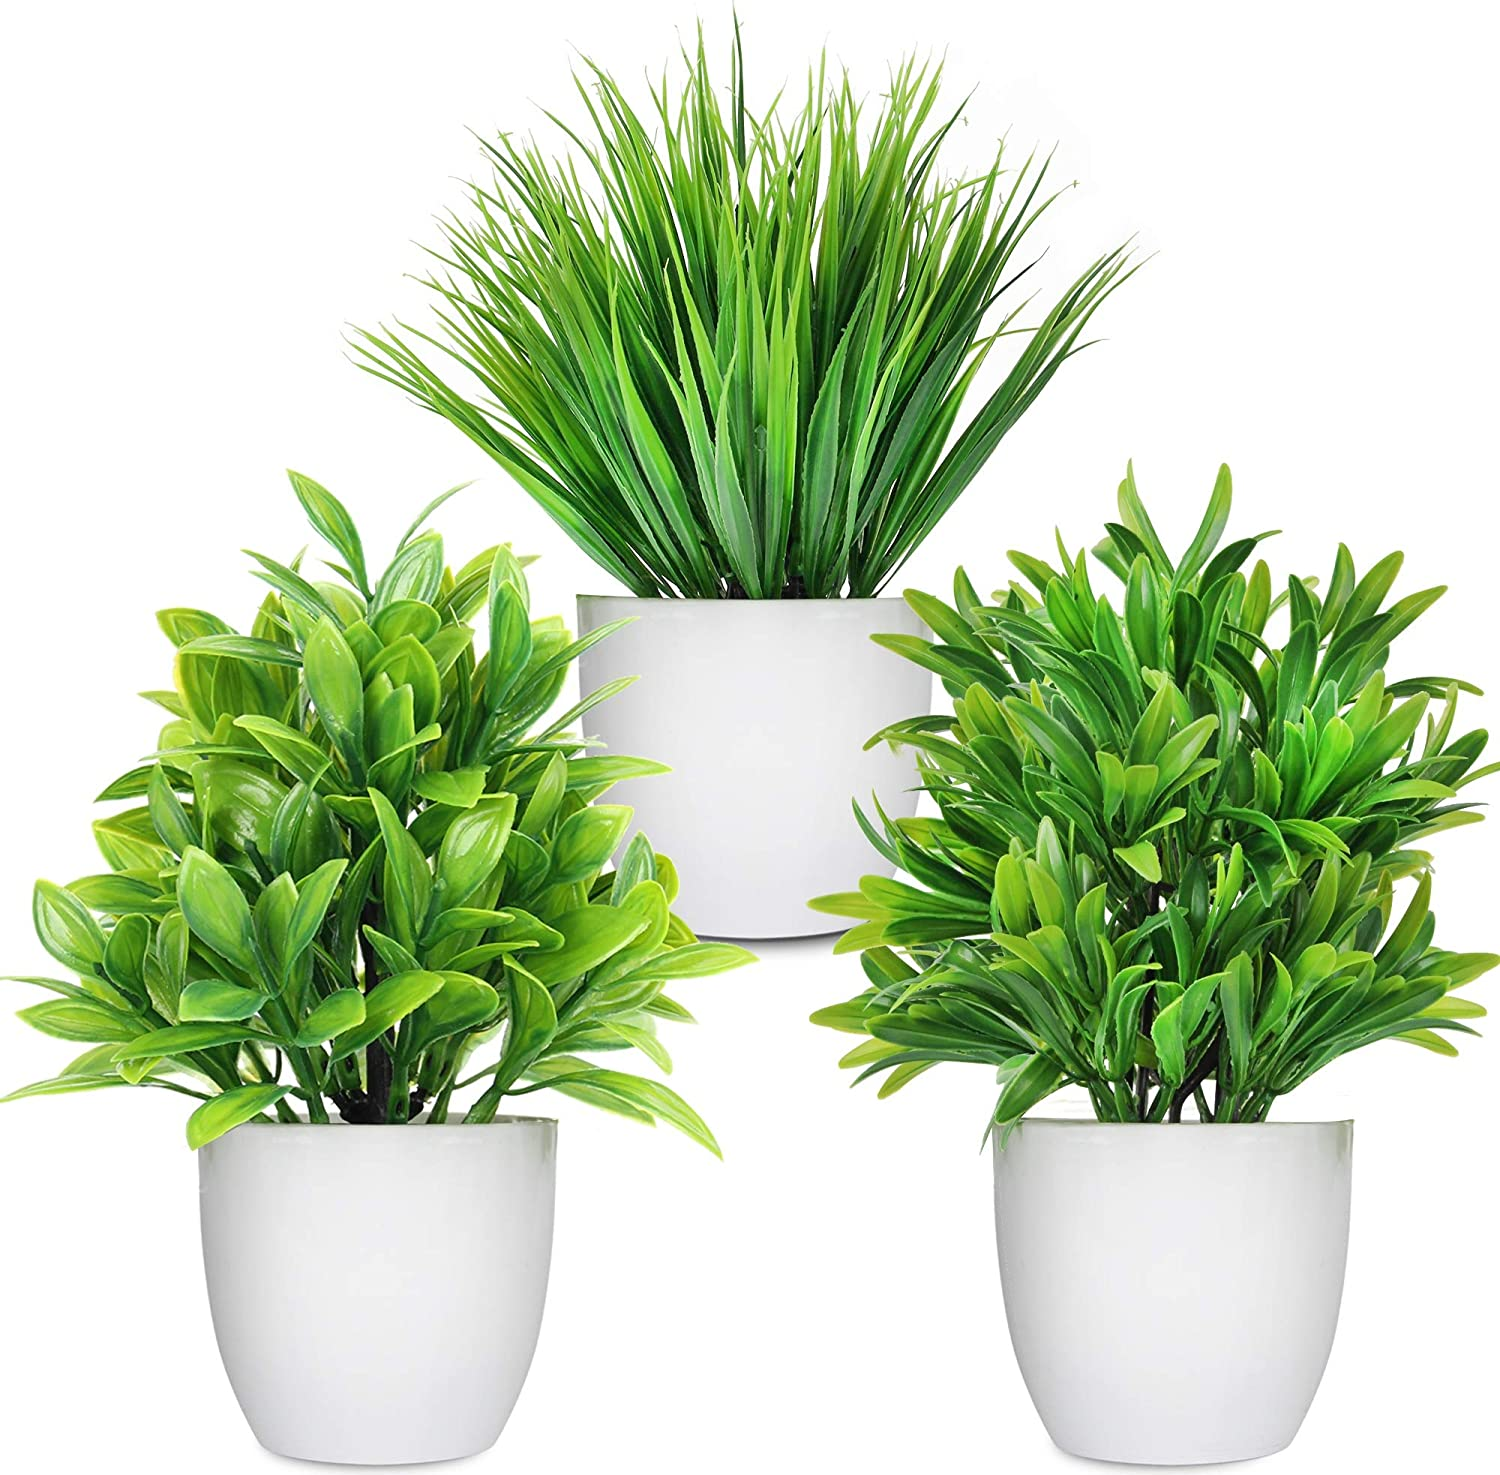 LELEE Artificial Plants Mini Fake Potted Plants, 3 Pack Small Eucalyptus Potted Faux Decorative Grass Plant with White Pot for Home Decor, Indoor, Office, Desk, Table Decoration